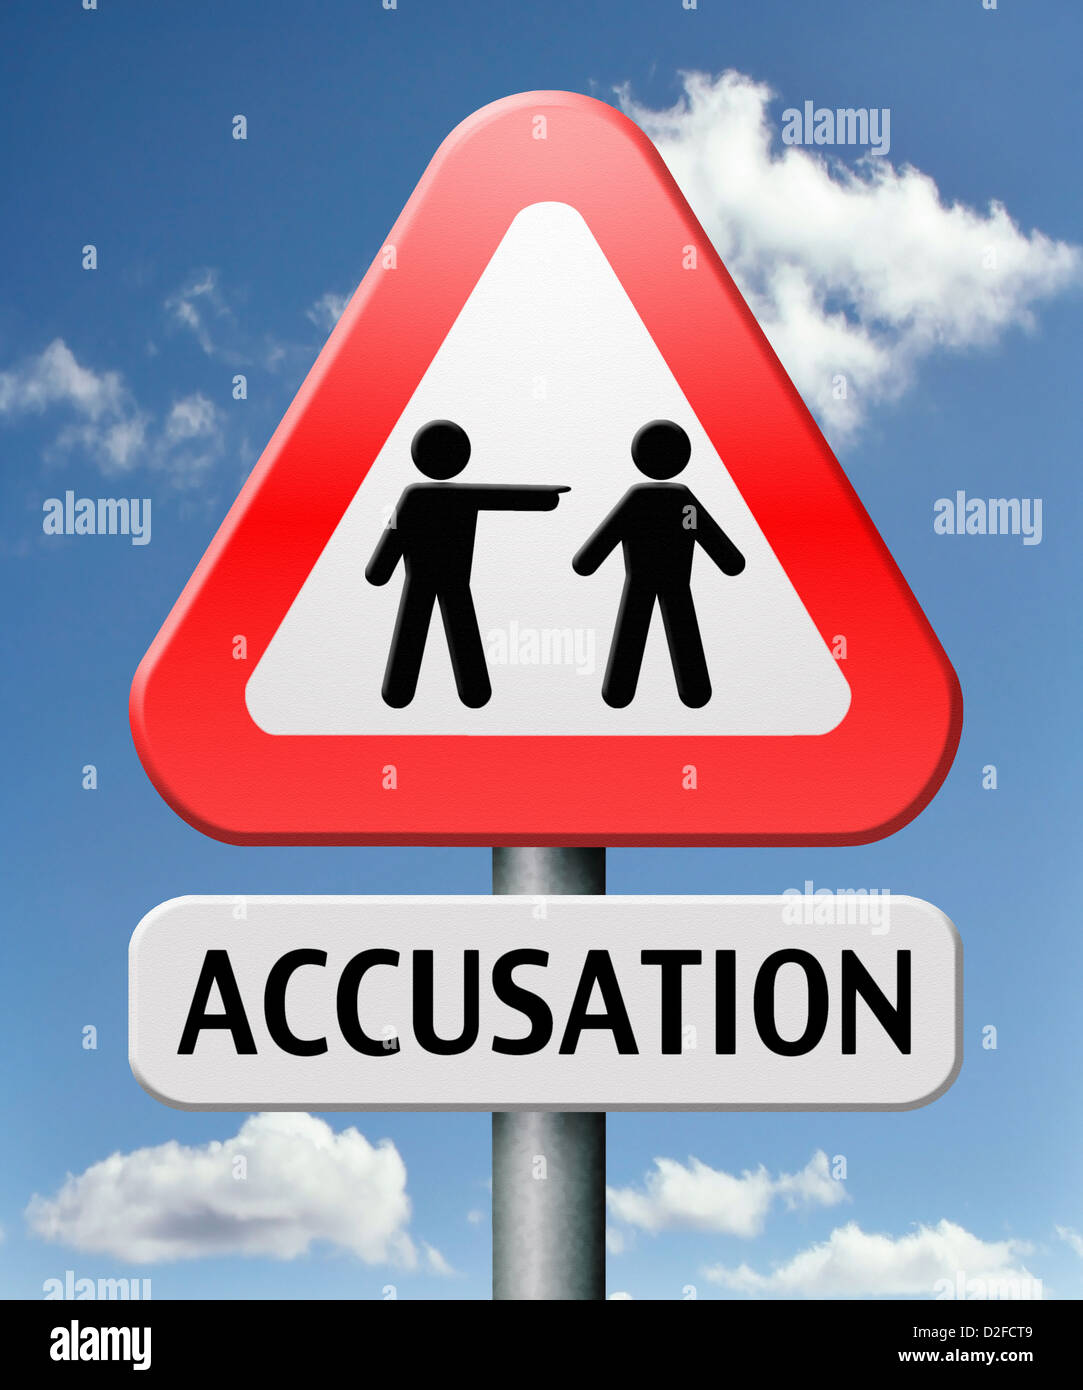 accusation false or real by pointing finger charged or found guilty of a crime or not by judge eye witness - Stock Image